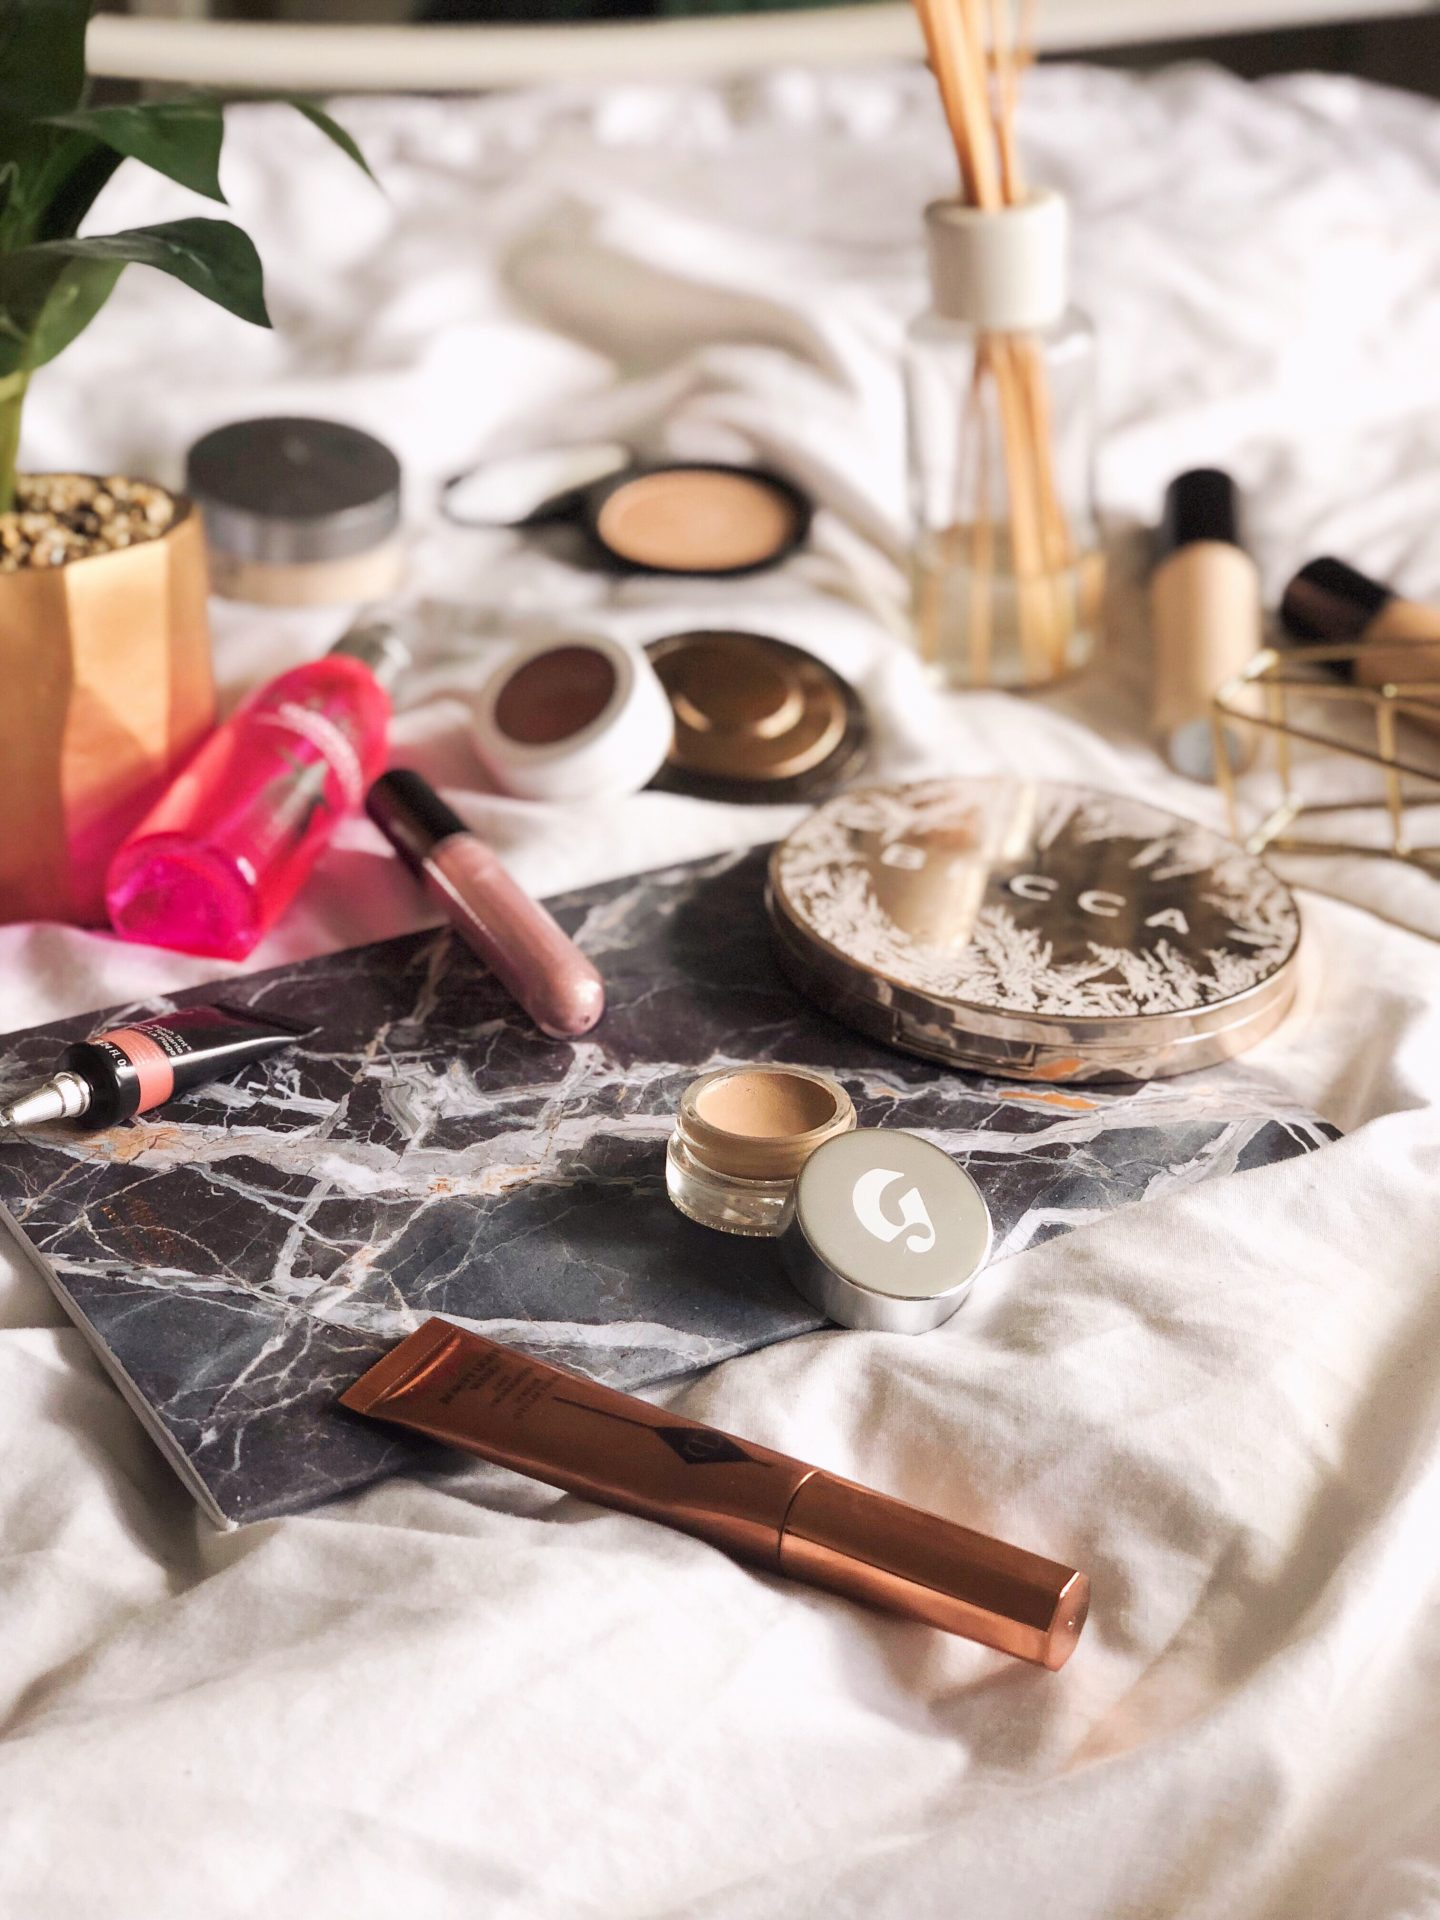 My Favourite Products for Radiant Makeup